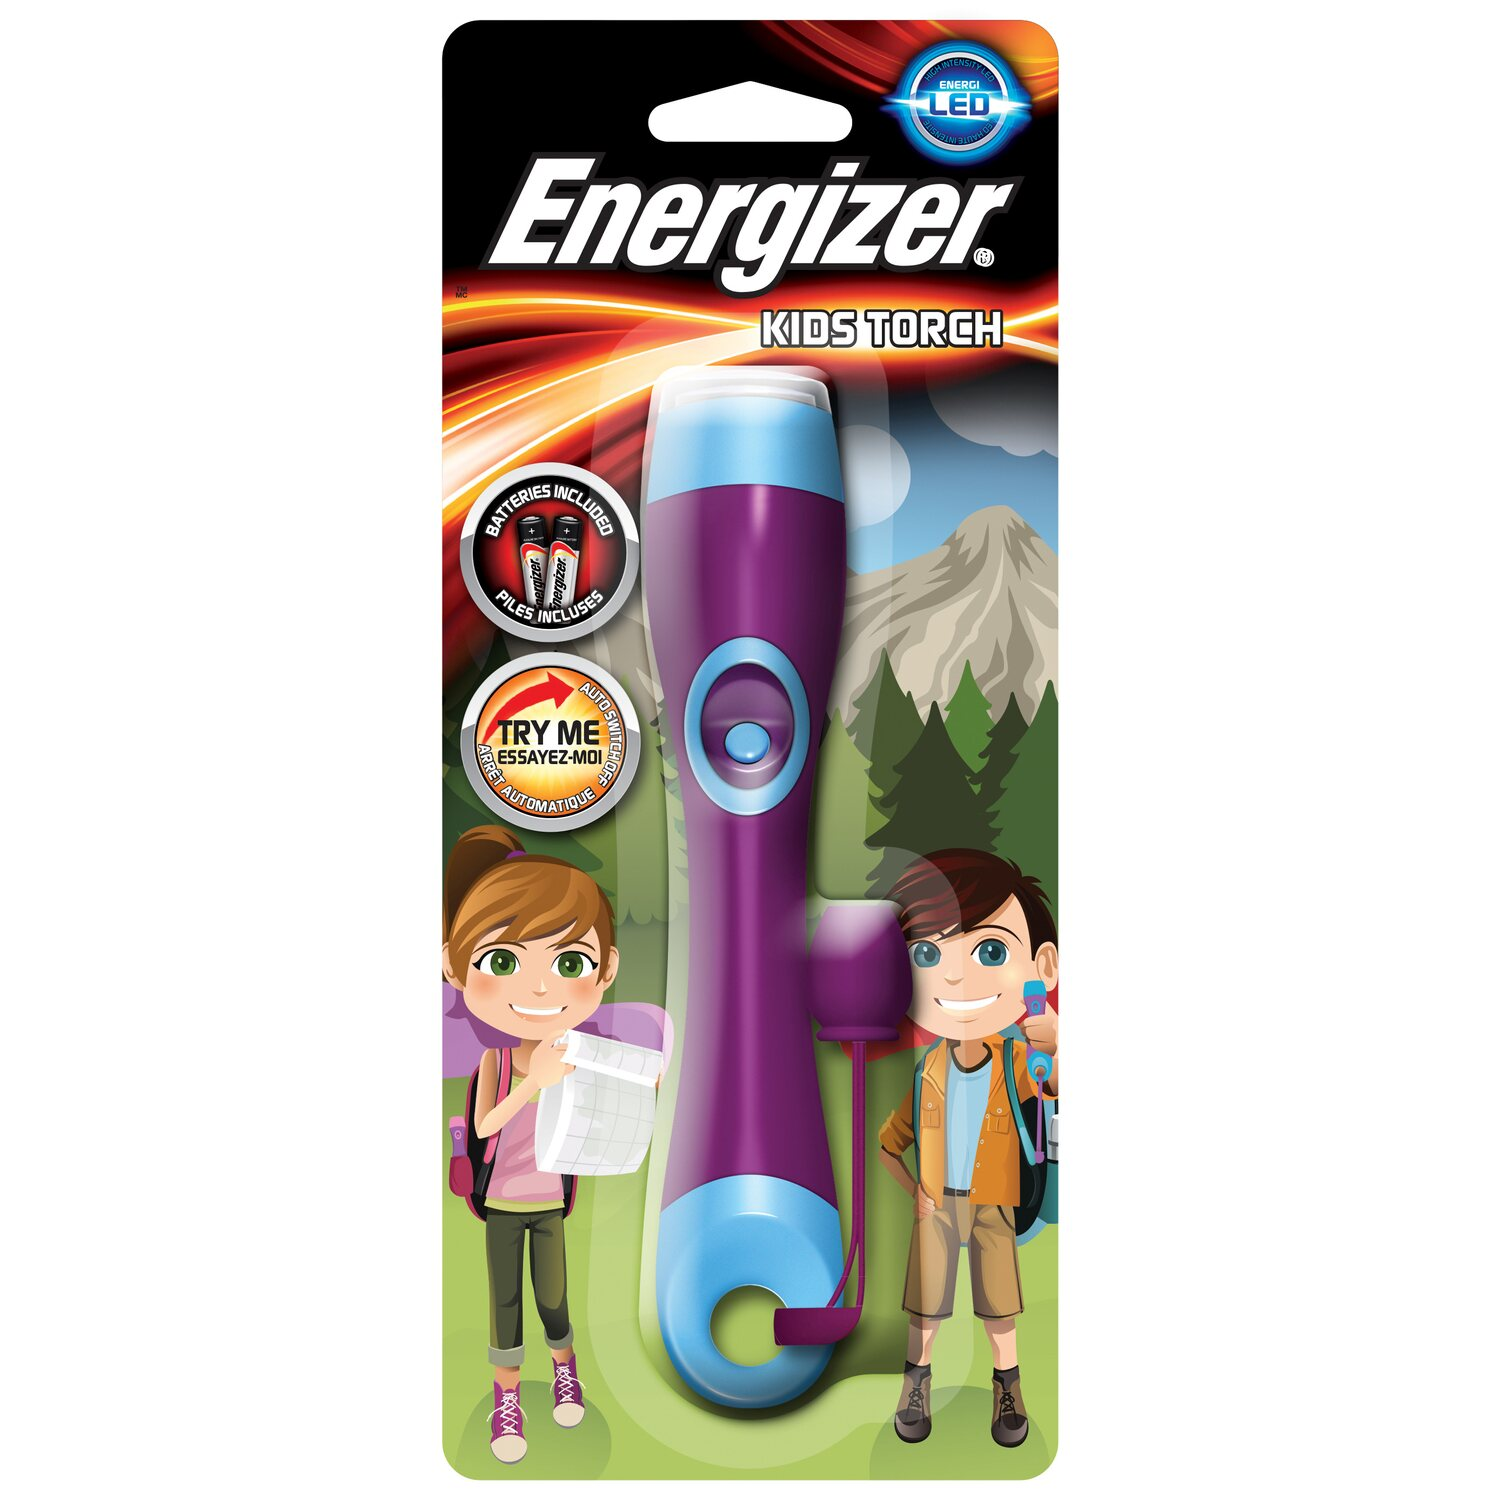 energizer taschenlampe kids torch inkl 2 x micro aaa batterien kaufen bei obi. Black Bedroom Furniture Sets. Home Design Ideas